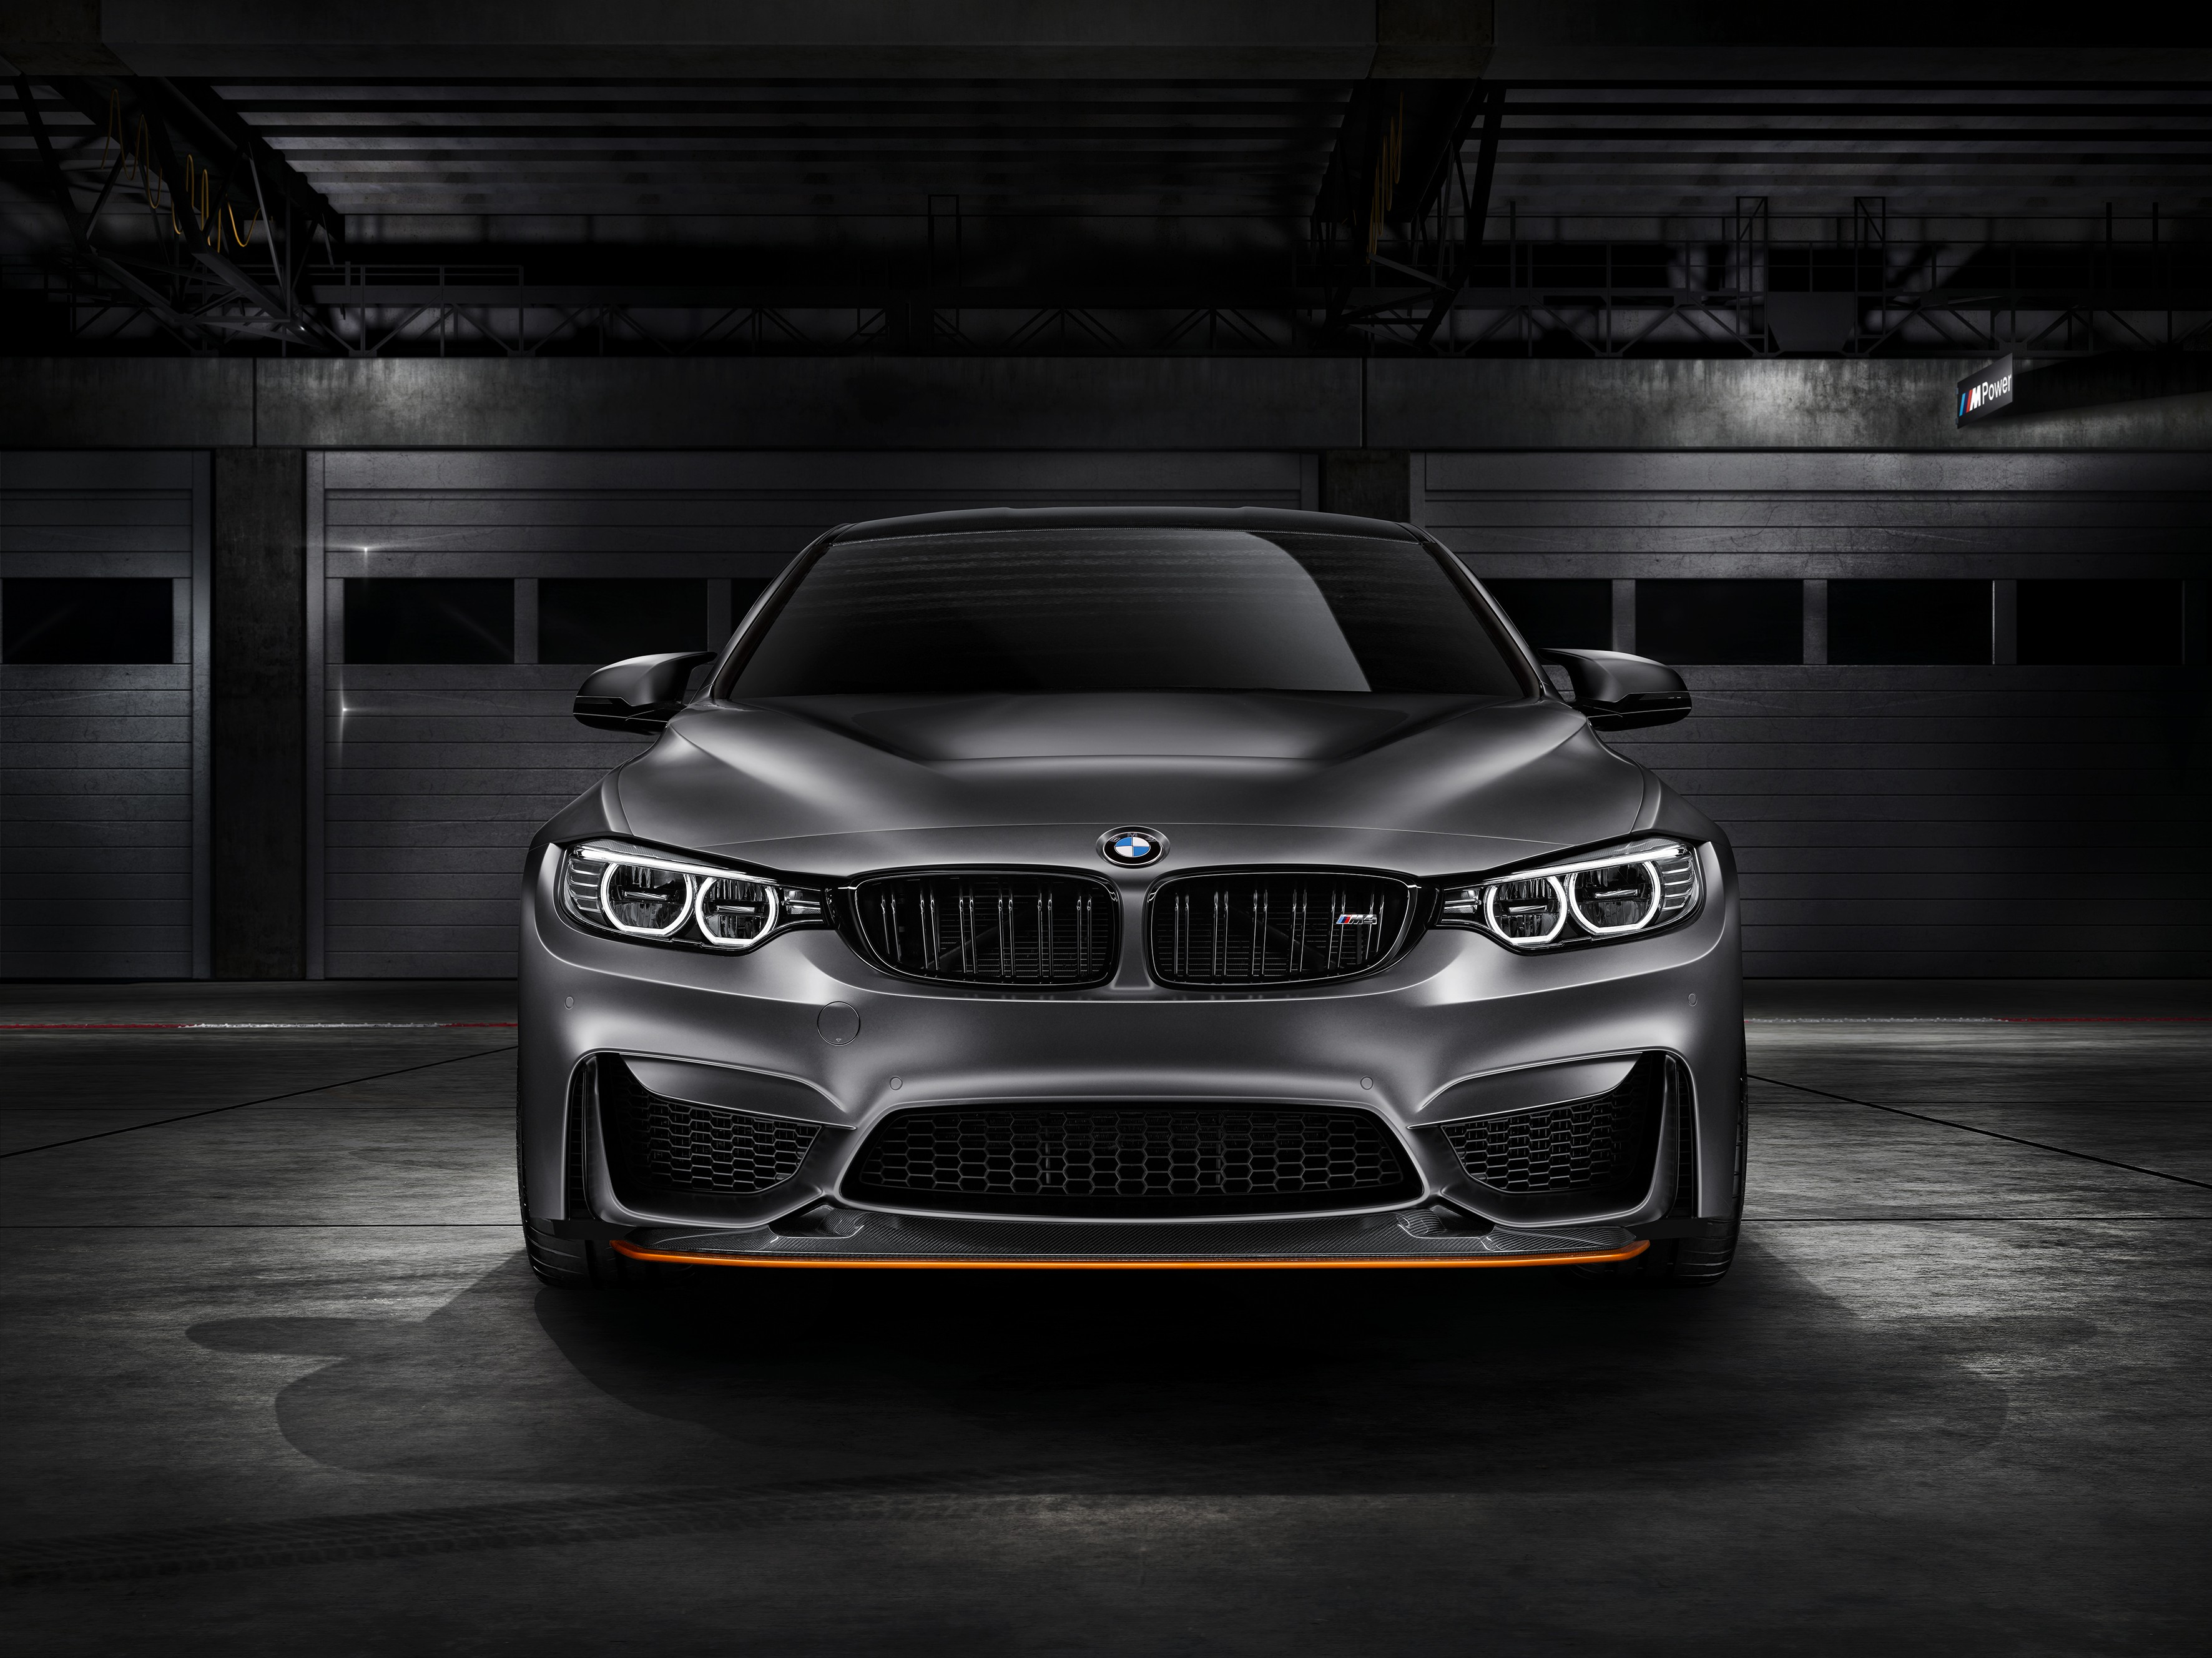 bmw-concept-m4-gts-makes-world-debut-at-pebble-beach-with-oled-lighting-photo-gallery_13